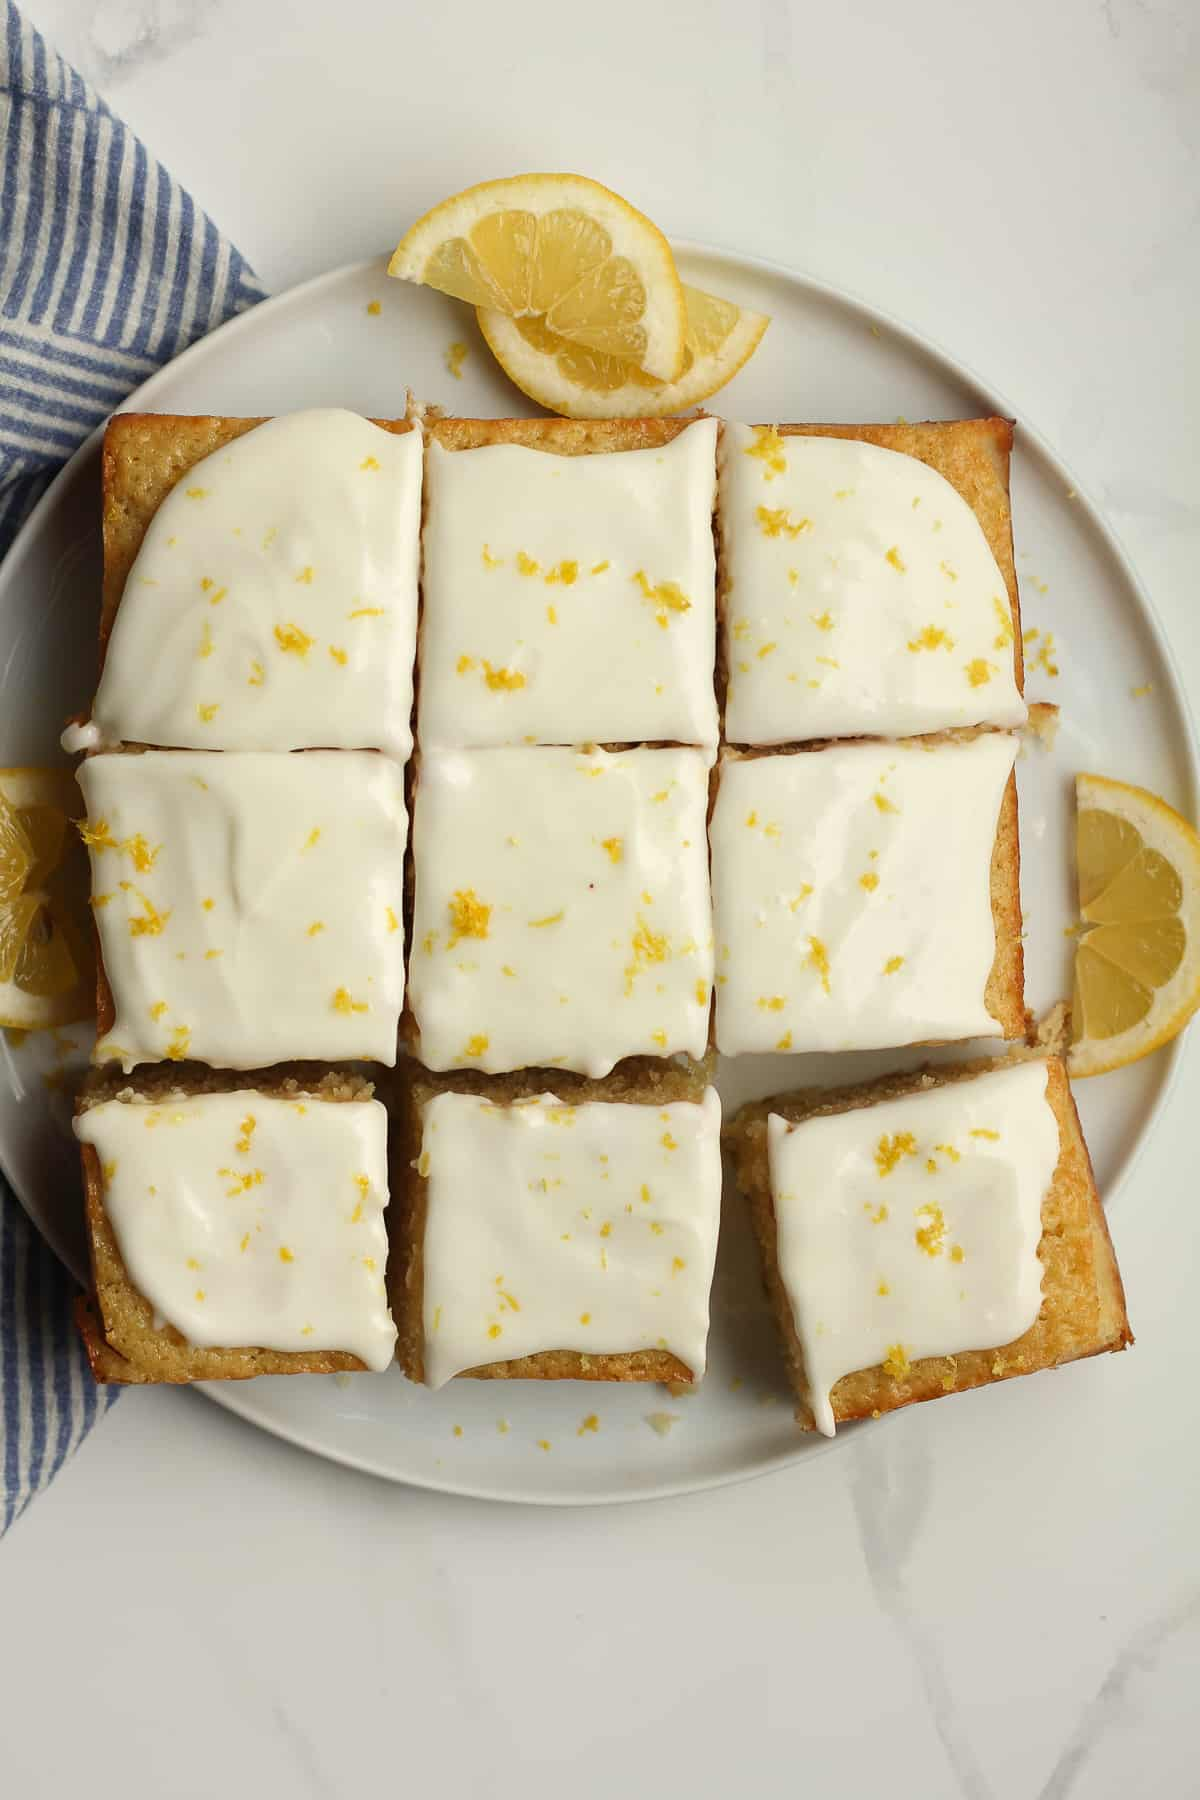 A plate of 9 pieces of lemon cake.